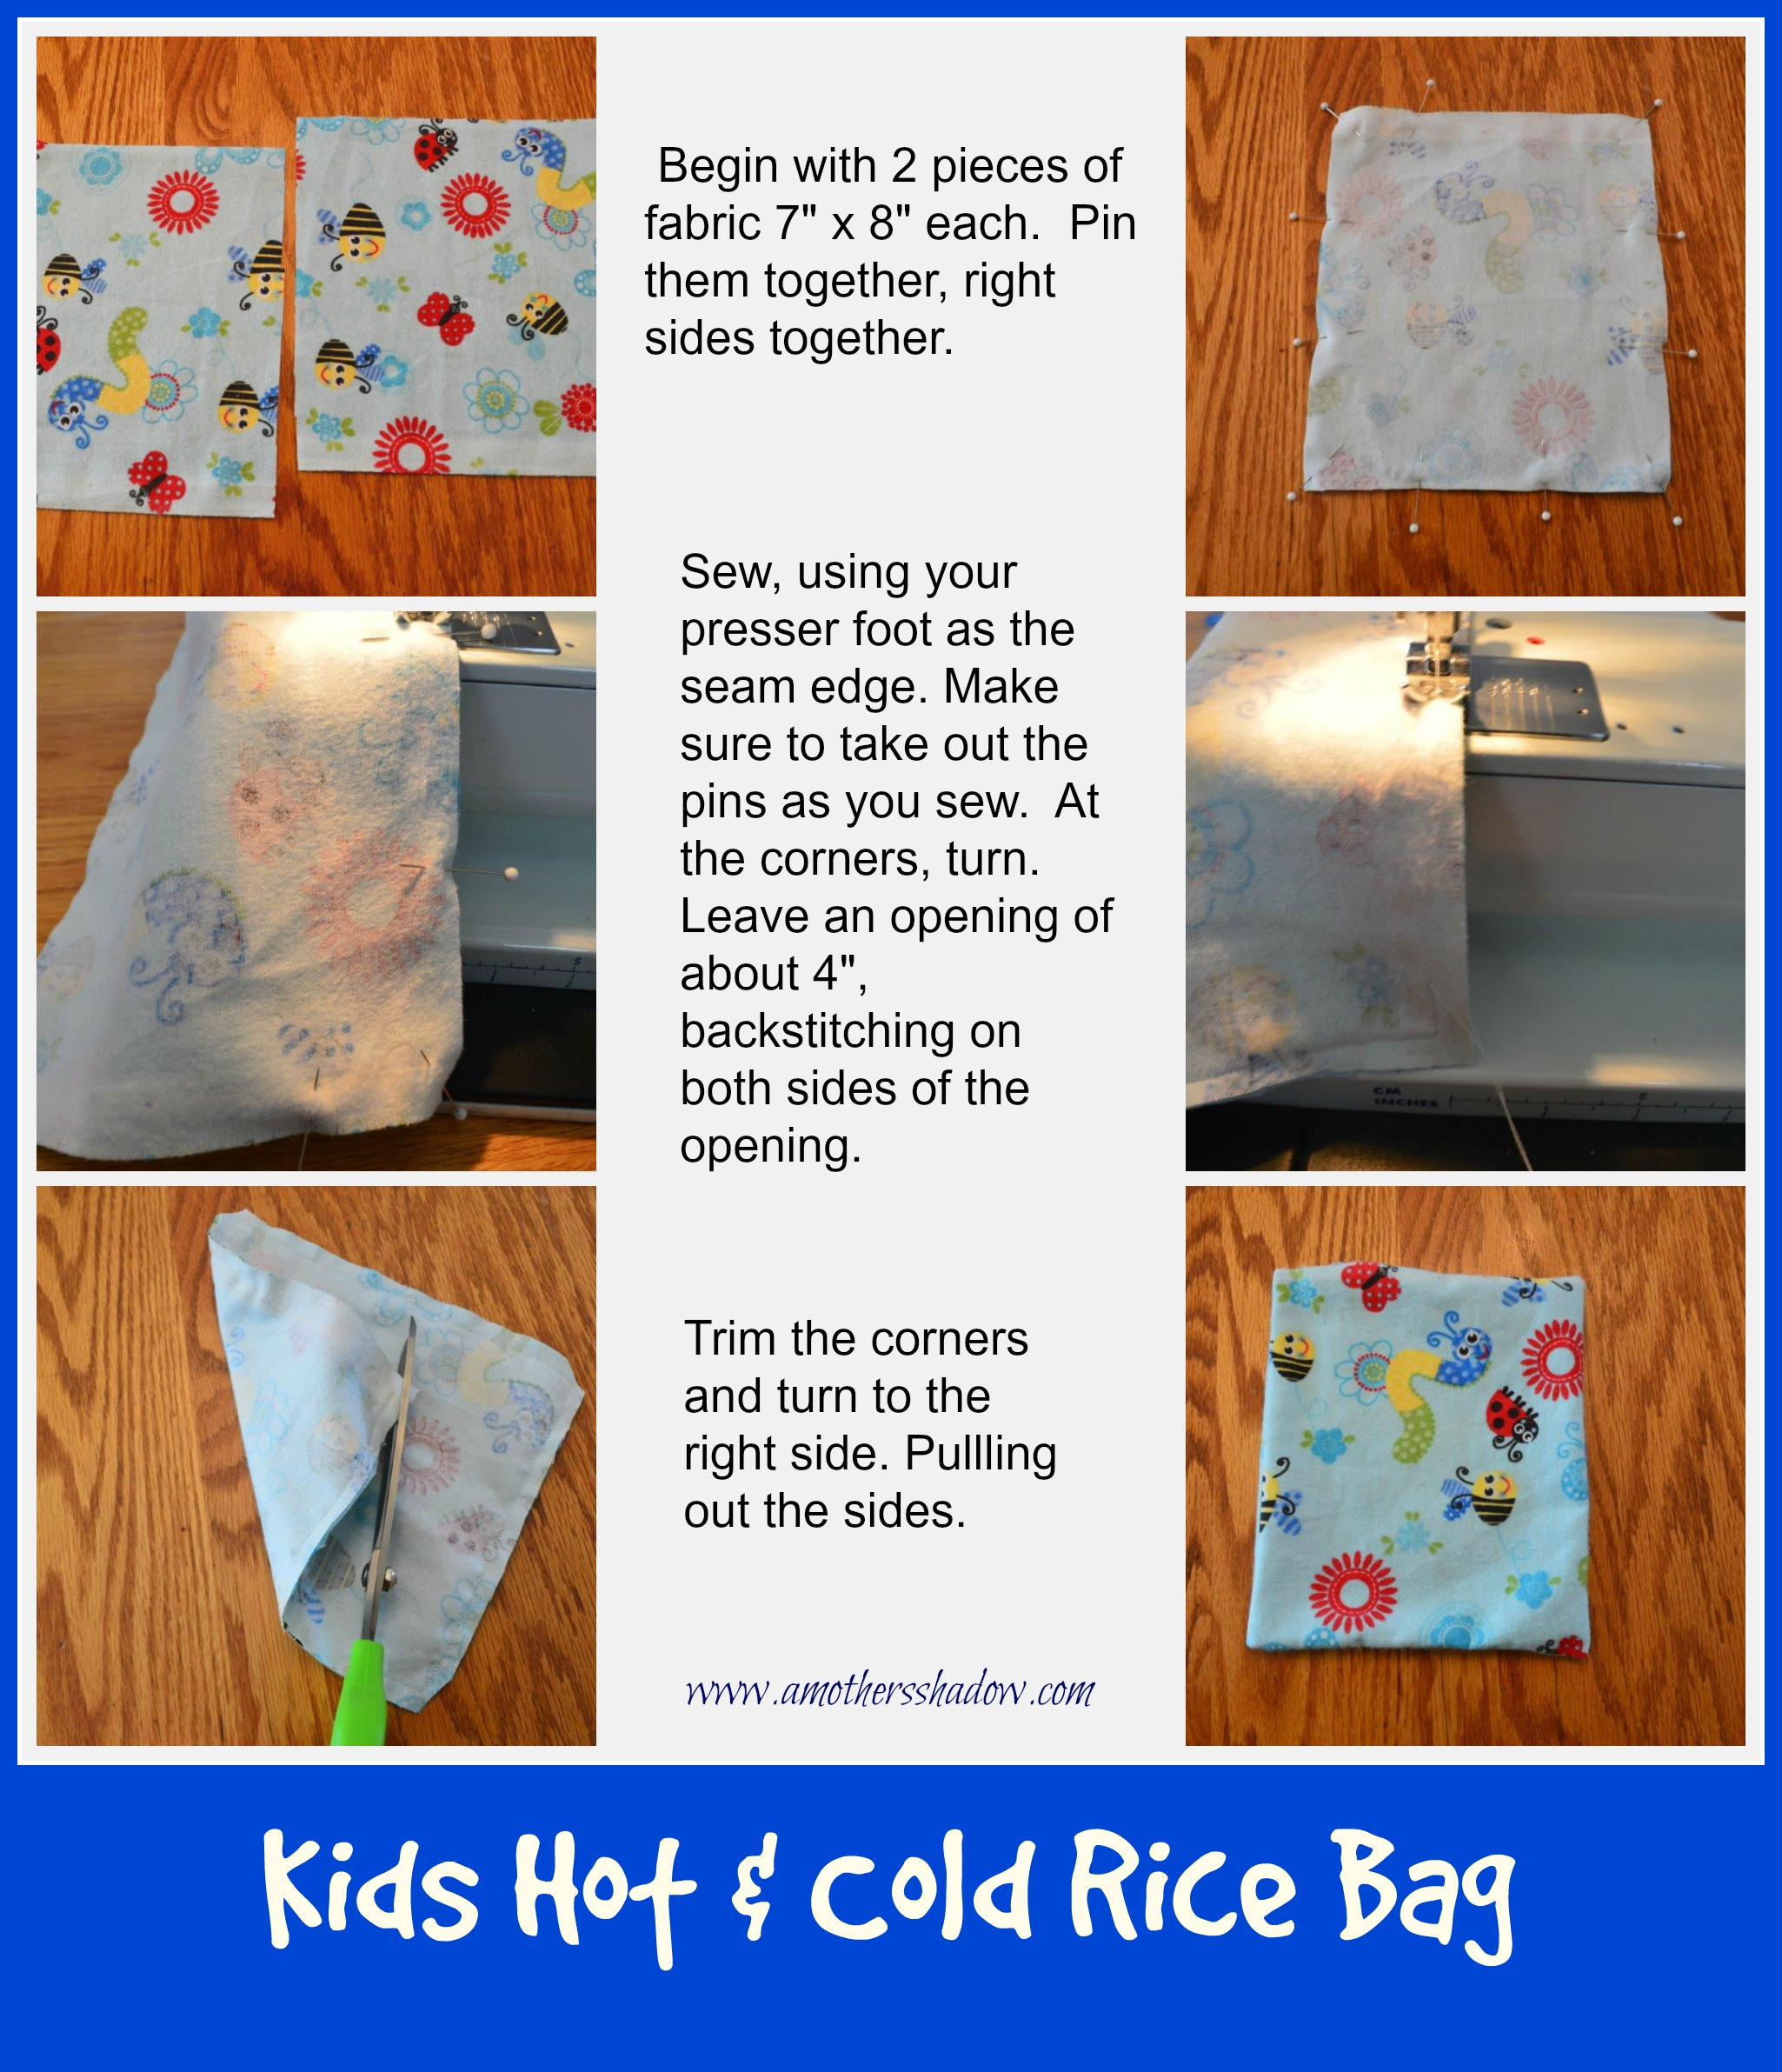 Kids Hot & Cold Rice Bag 1